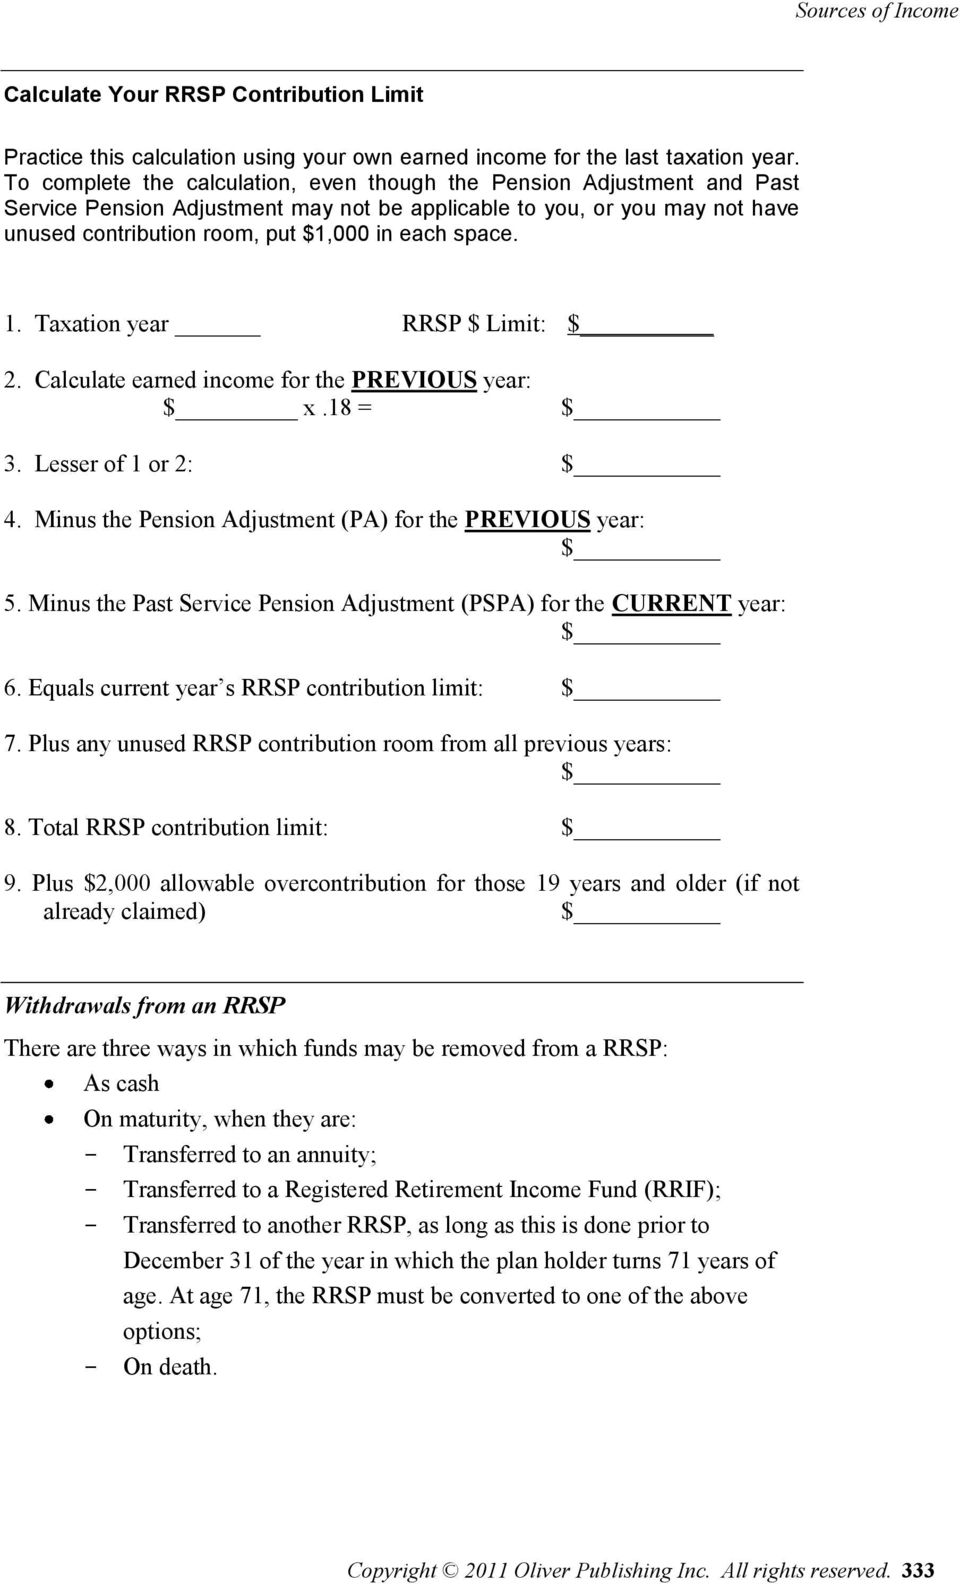 space. 1. Taxation year RRSP $ Limit: $ 2. Calculate earned income for the PREVIOUS year: $ x.18 = $ 3. Lesser of 1 or 2: $ 4. Minus the Pension Adjustment (PA) for the PREVIOUS year: $ 5.